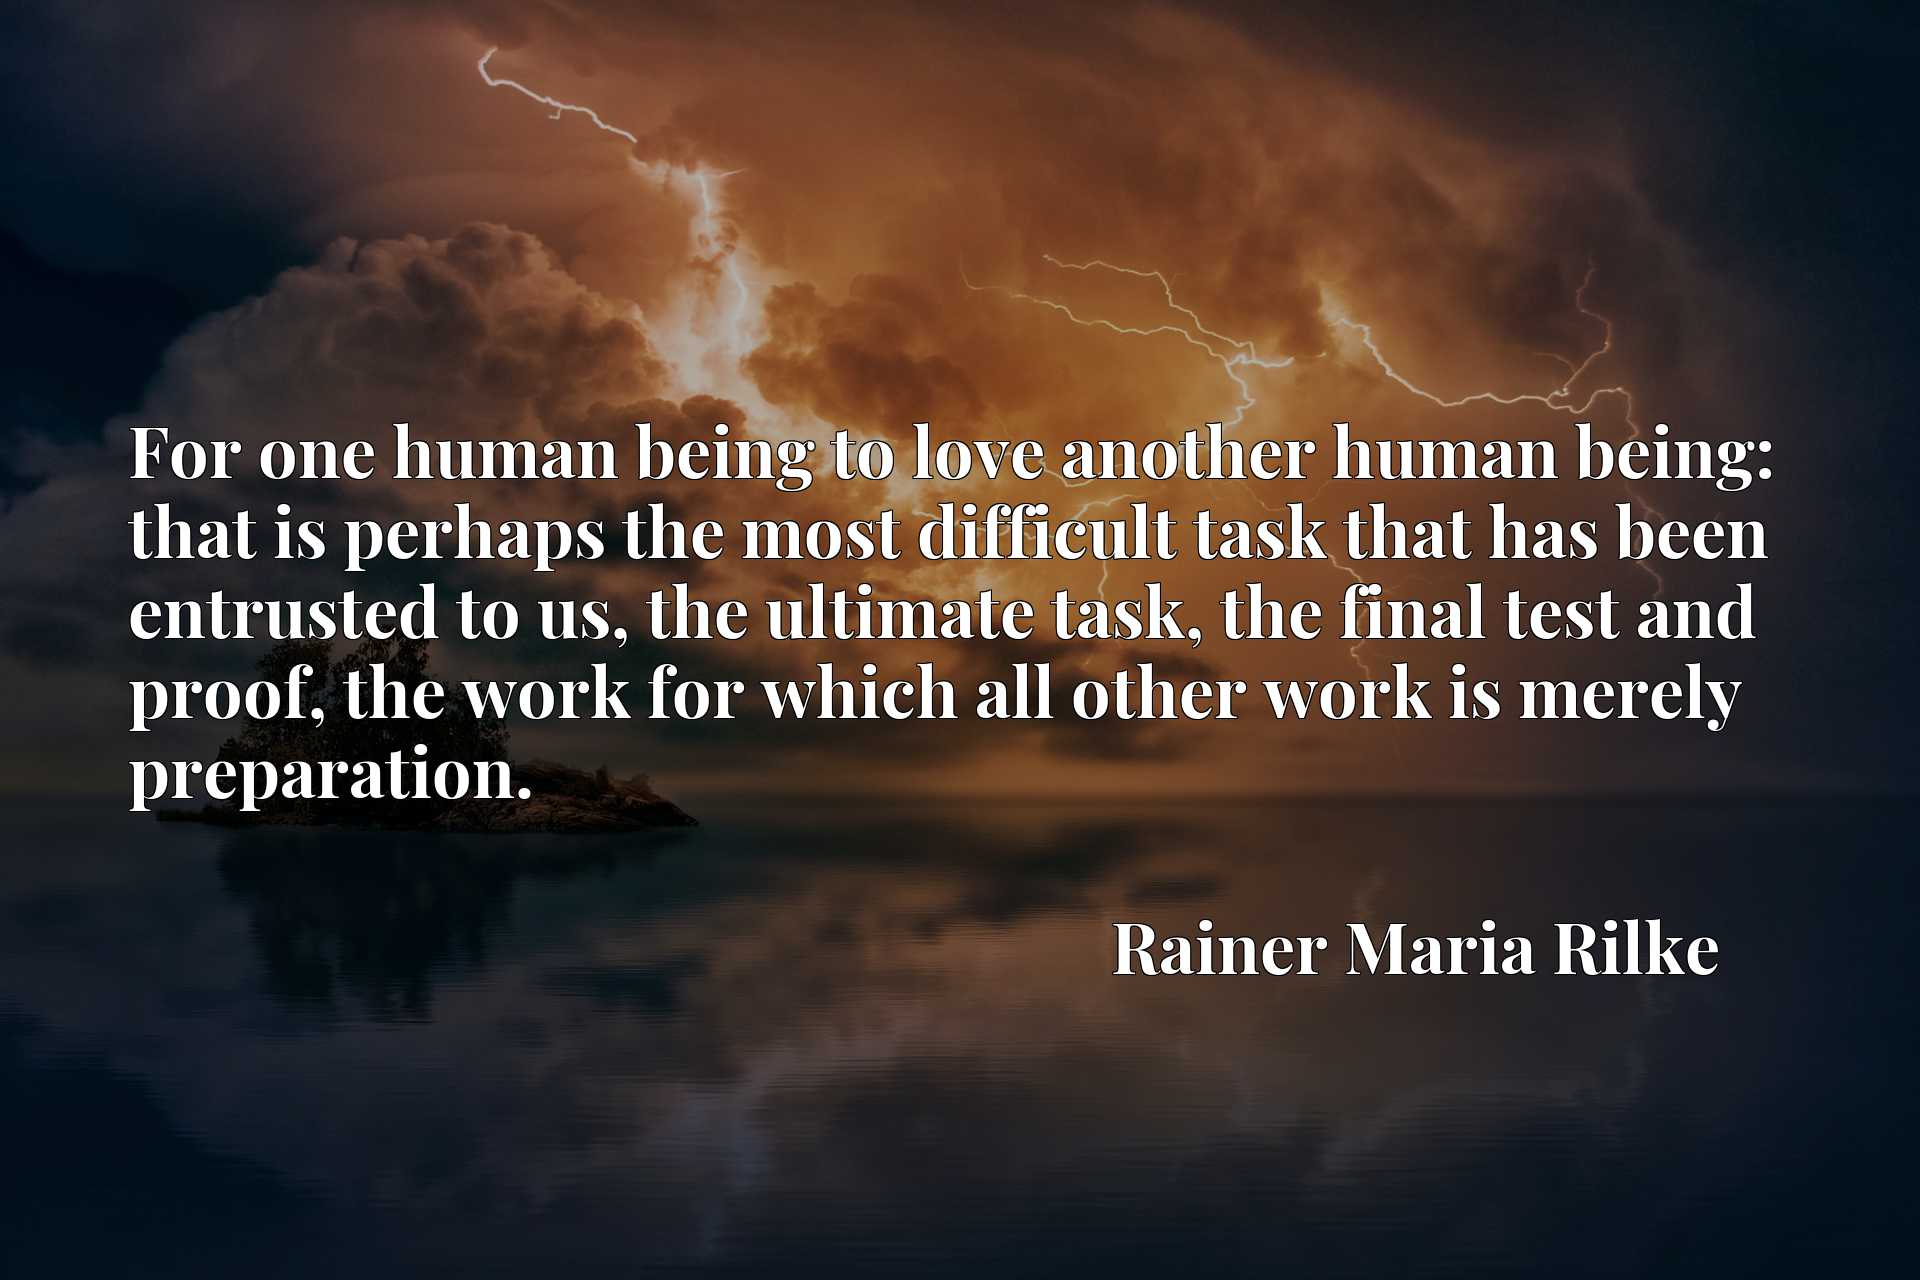 For one human being to love another human being: that is perhaps the most difficult task that has been entrusted to us, the ultimate task, the final test and proof, the work for which all other work is merely preparation.